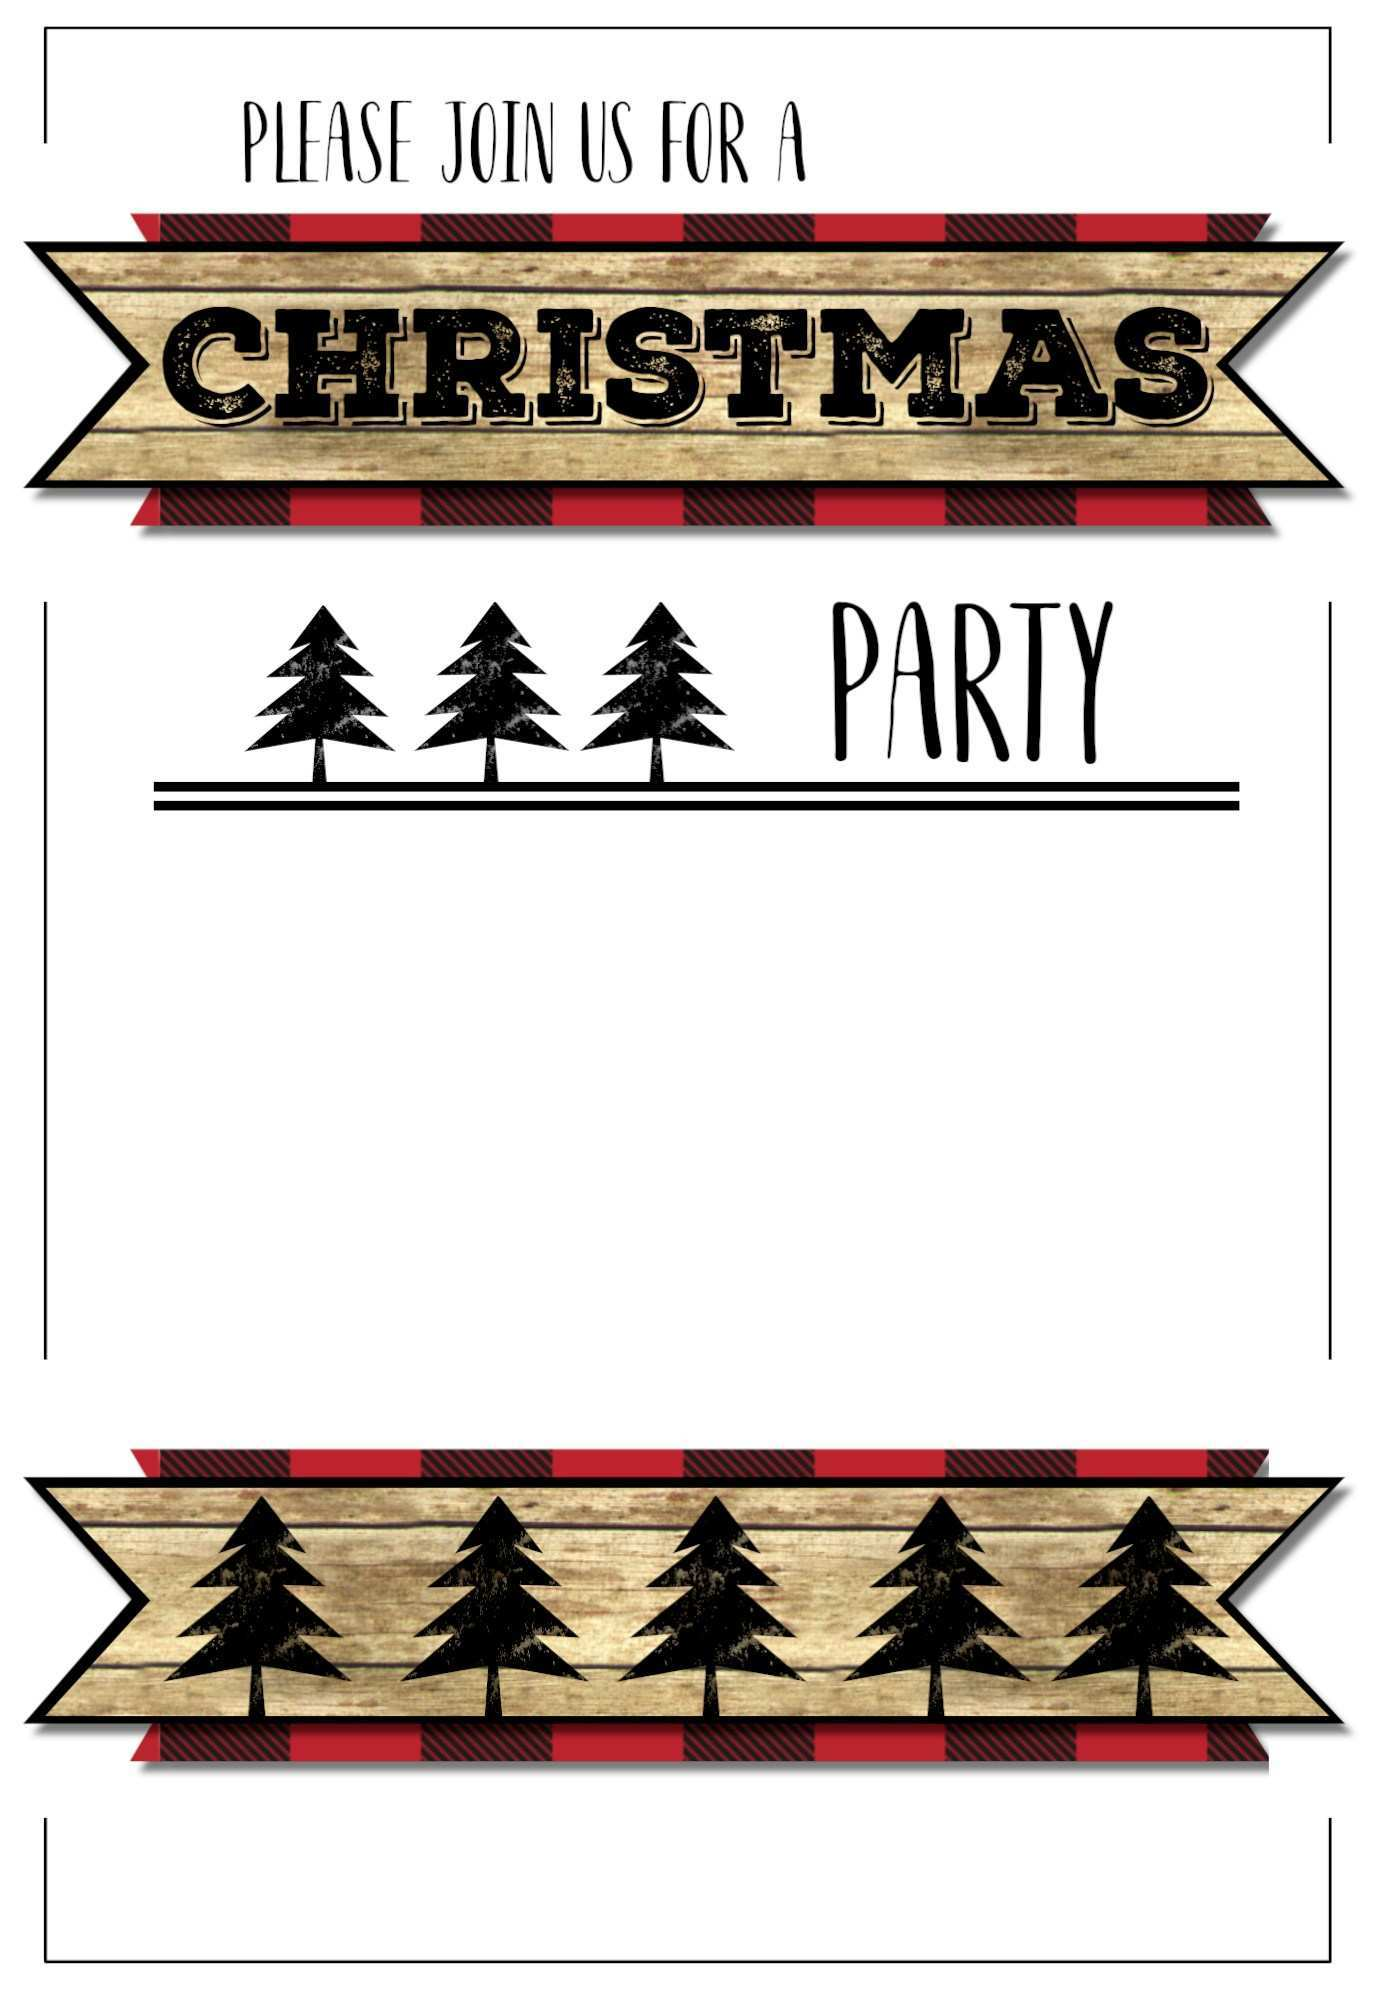 Ninja Party Invitation Template Free